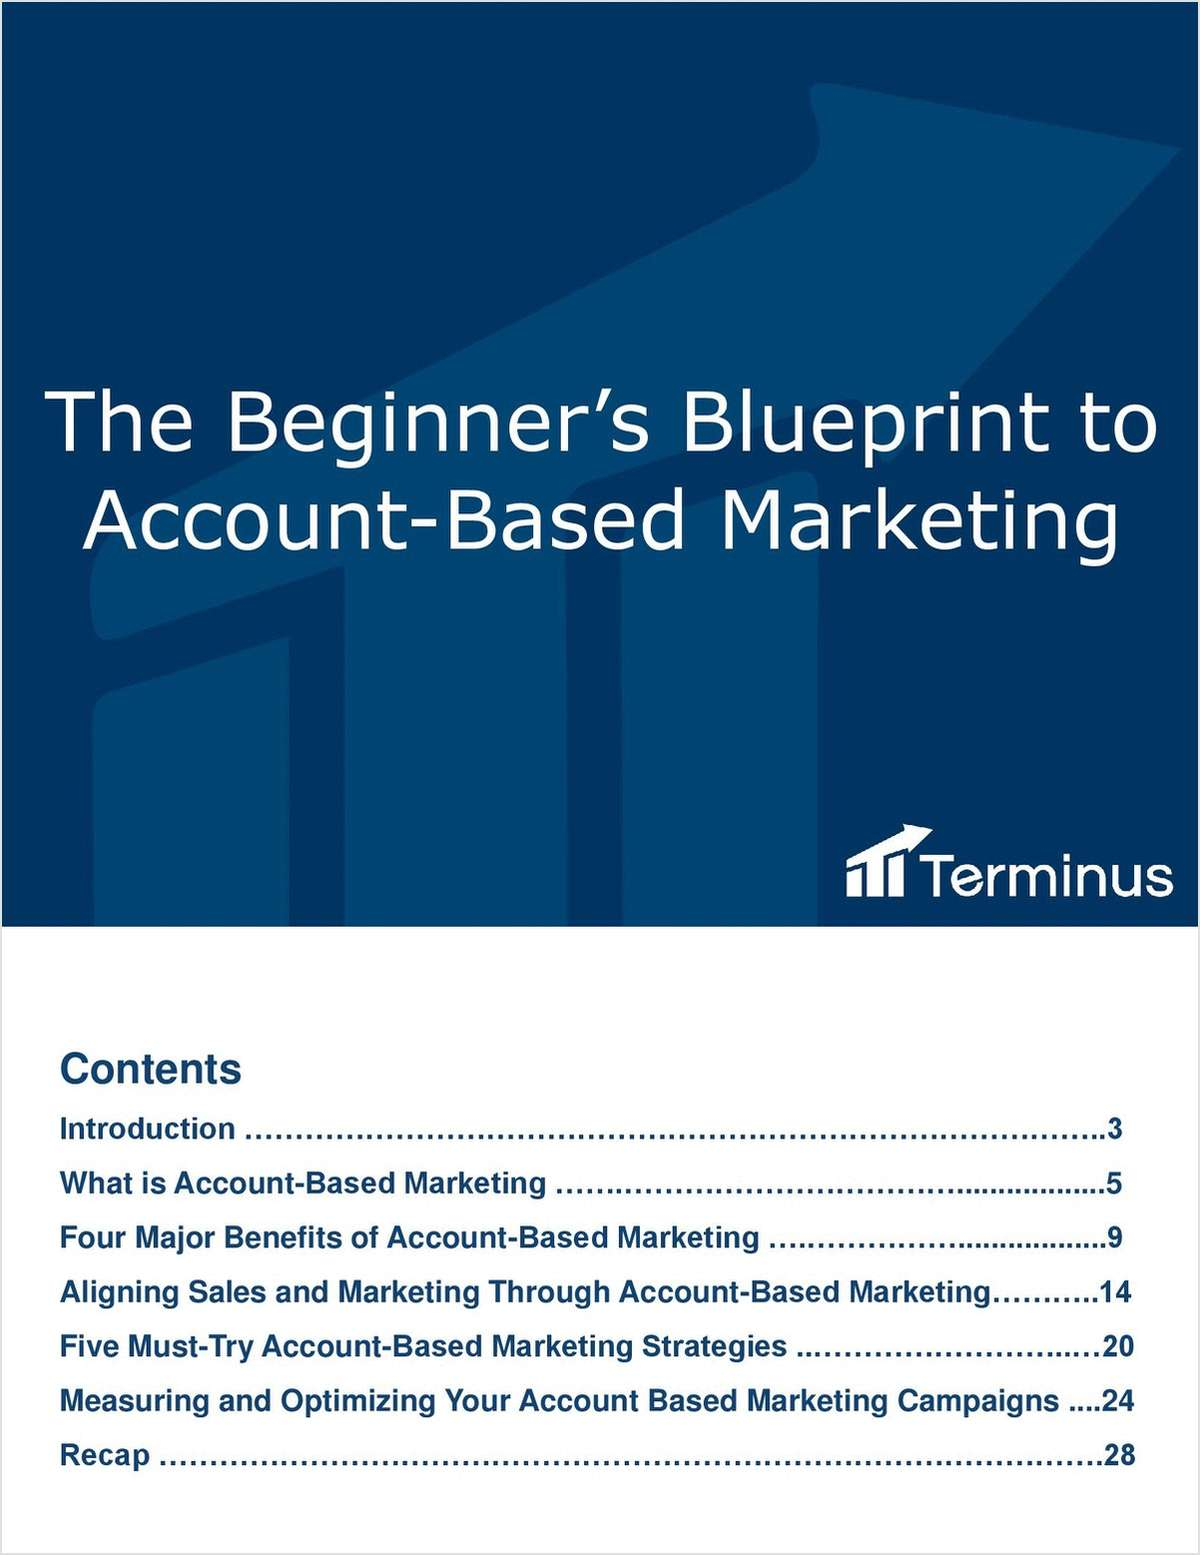 The Beginner's Blueprint To Account-Based Marketing